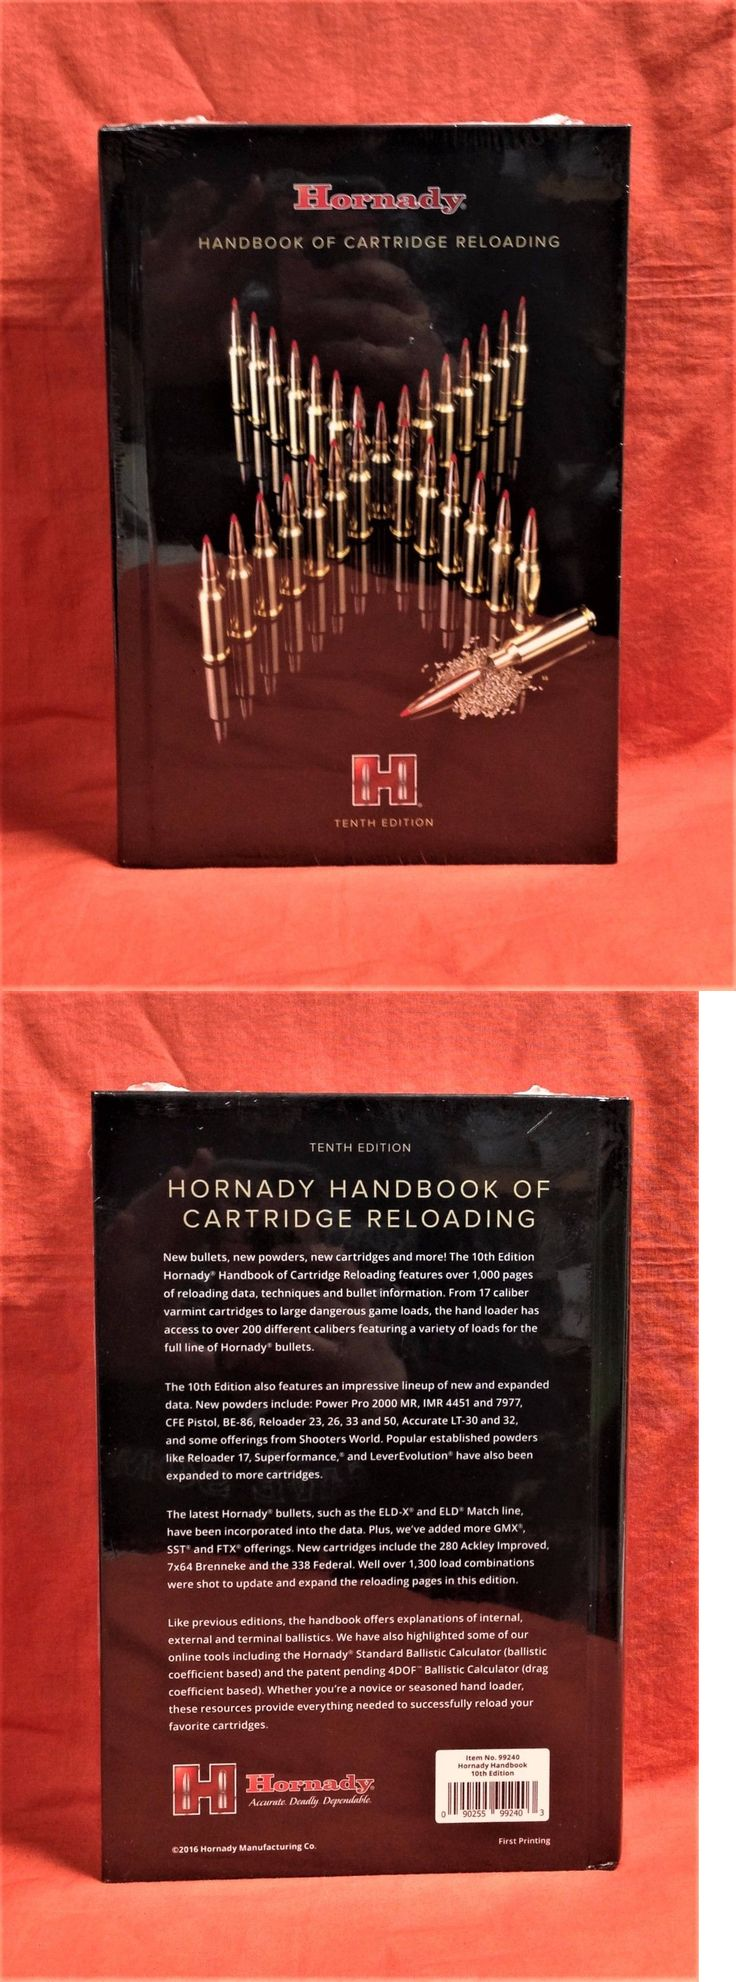 Manuals and Instruction Material 111293: Hornady Handbook Of Cartridge Reloading 10Th Edition #99240 BUY IT NOW ONLY: $41.39